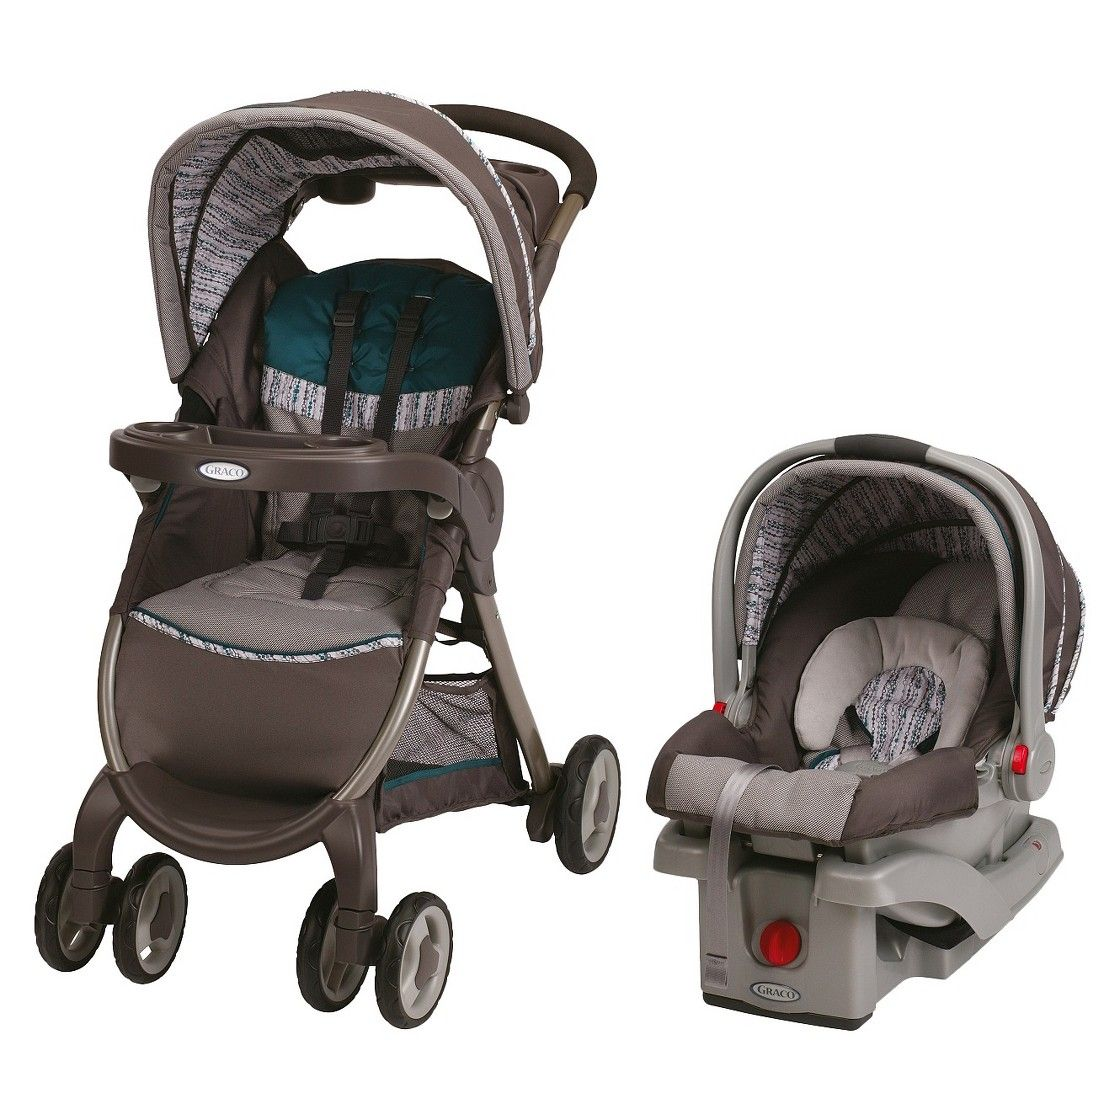 Graco FastAction Fold Click Connect Travel System Travel